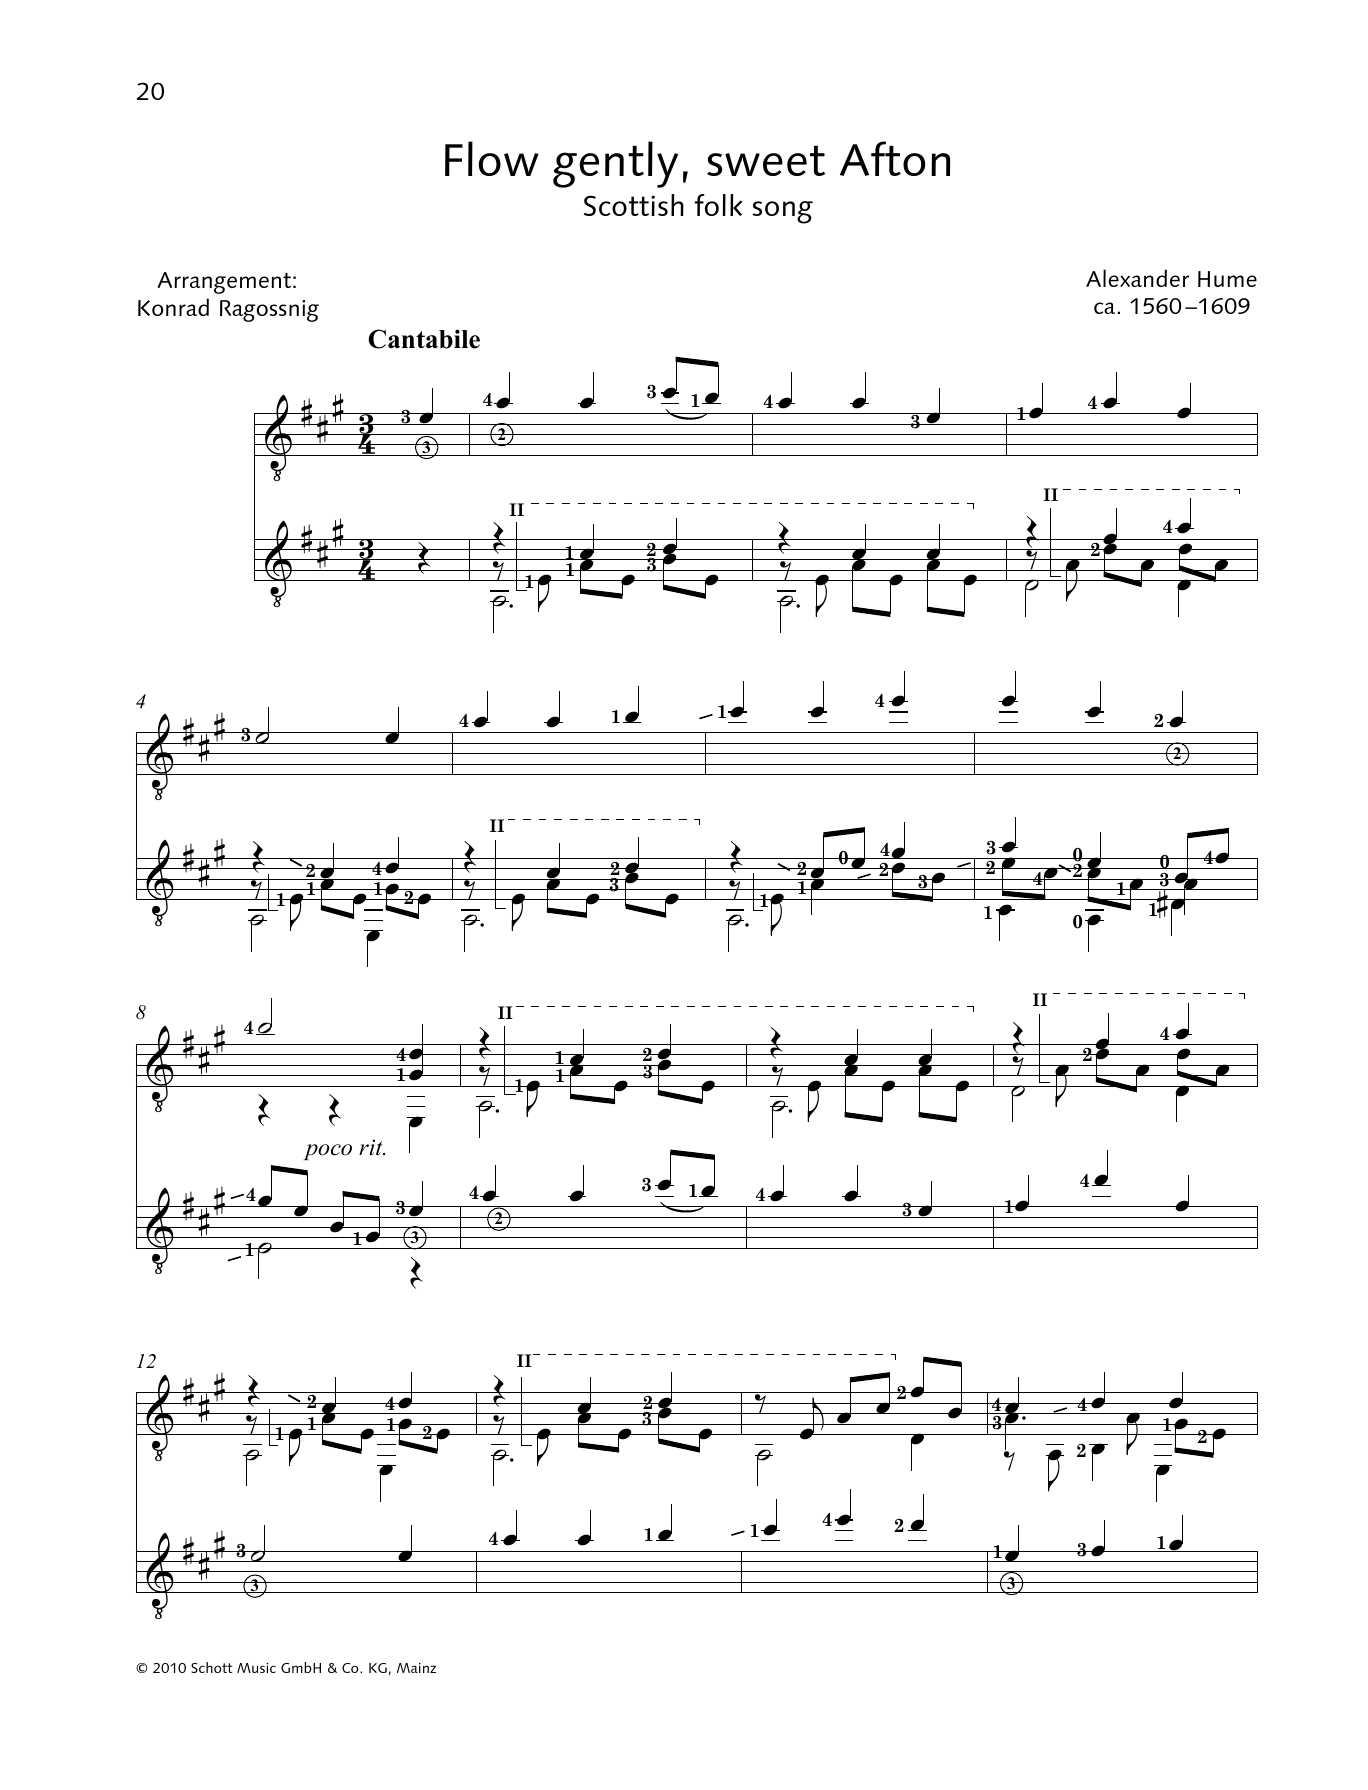 Flow Gently, Sweet Afton - Full Score Sheet Music